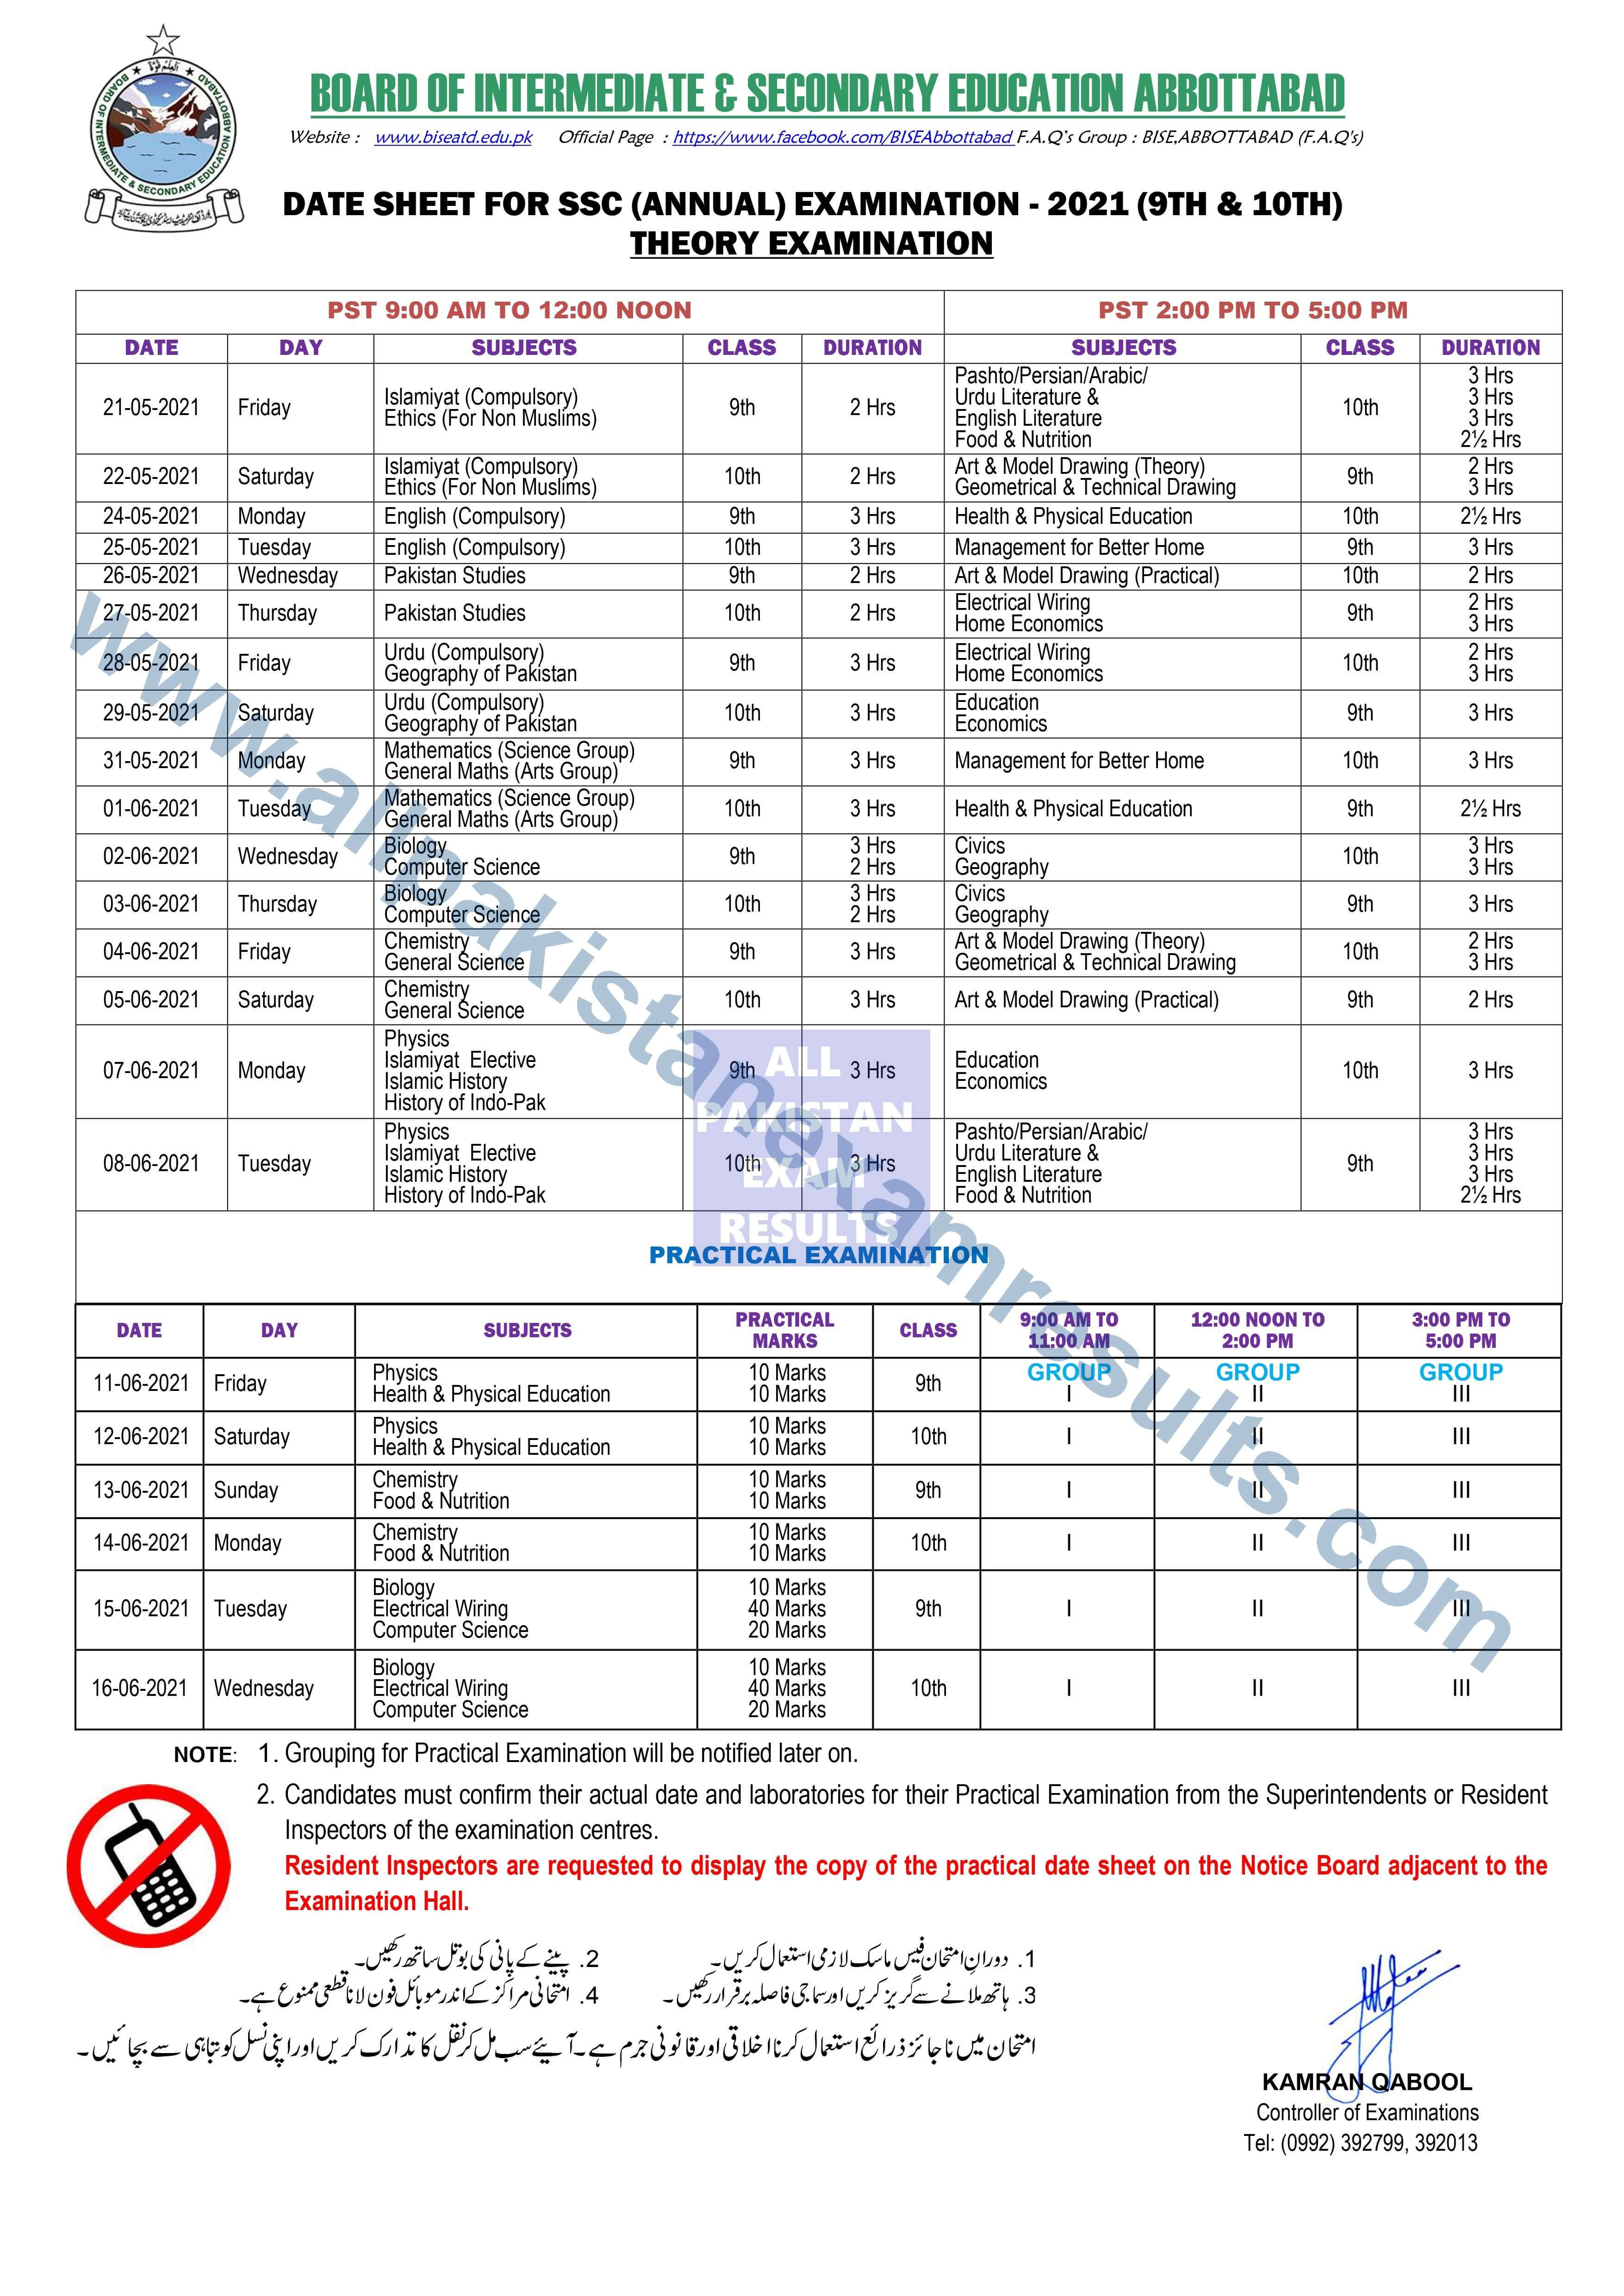 BISE Abbottabad Date Sheet For SSC Annual Exam 2021